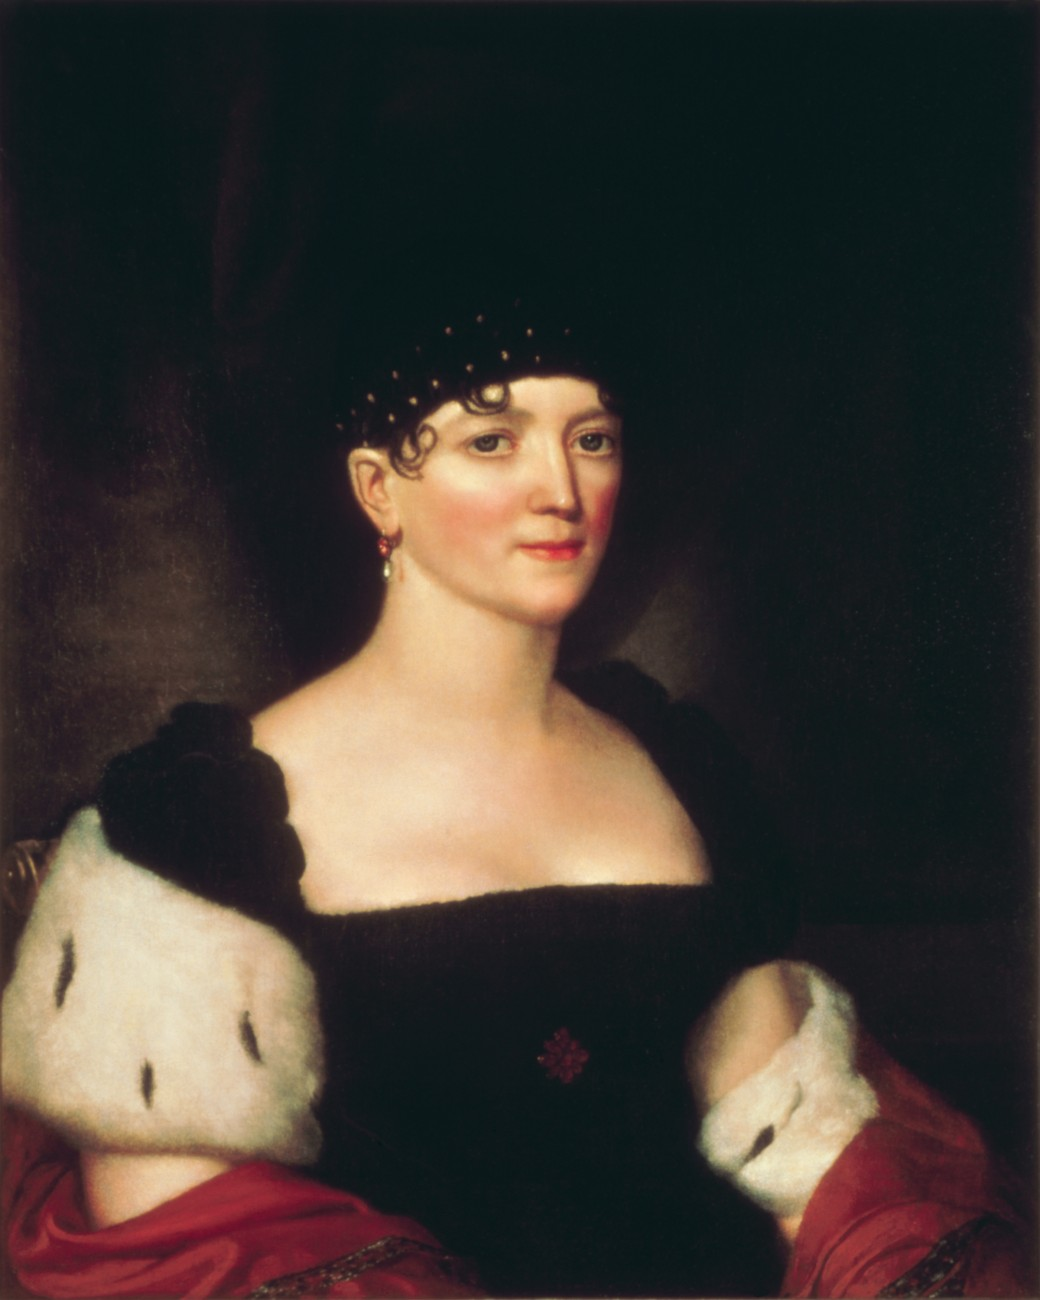 1816 or 1820 portrait of Elizabeth Kortright Monroe by Eben F. Comens after John Vanderlyn